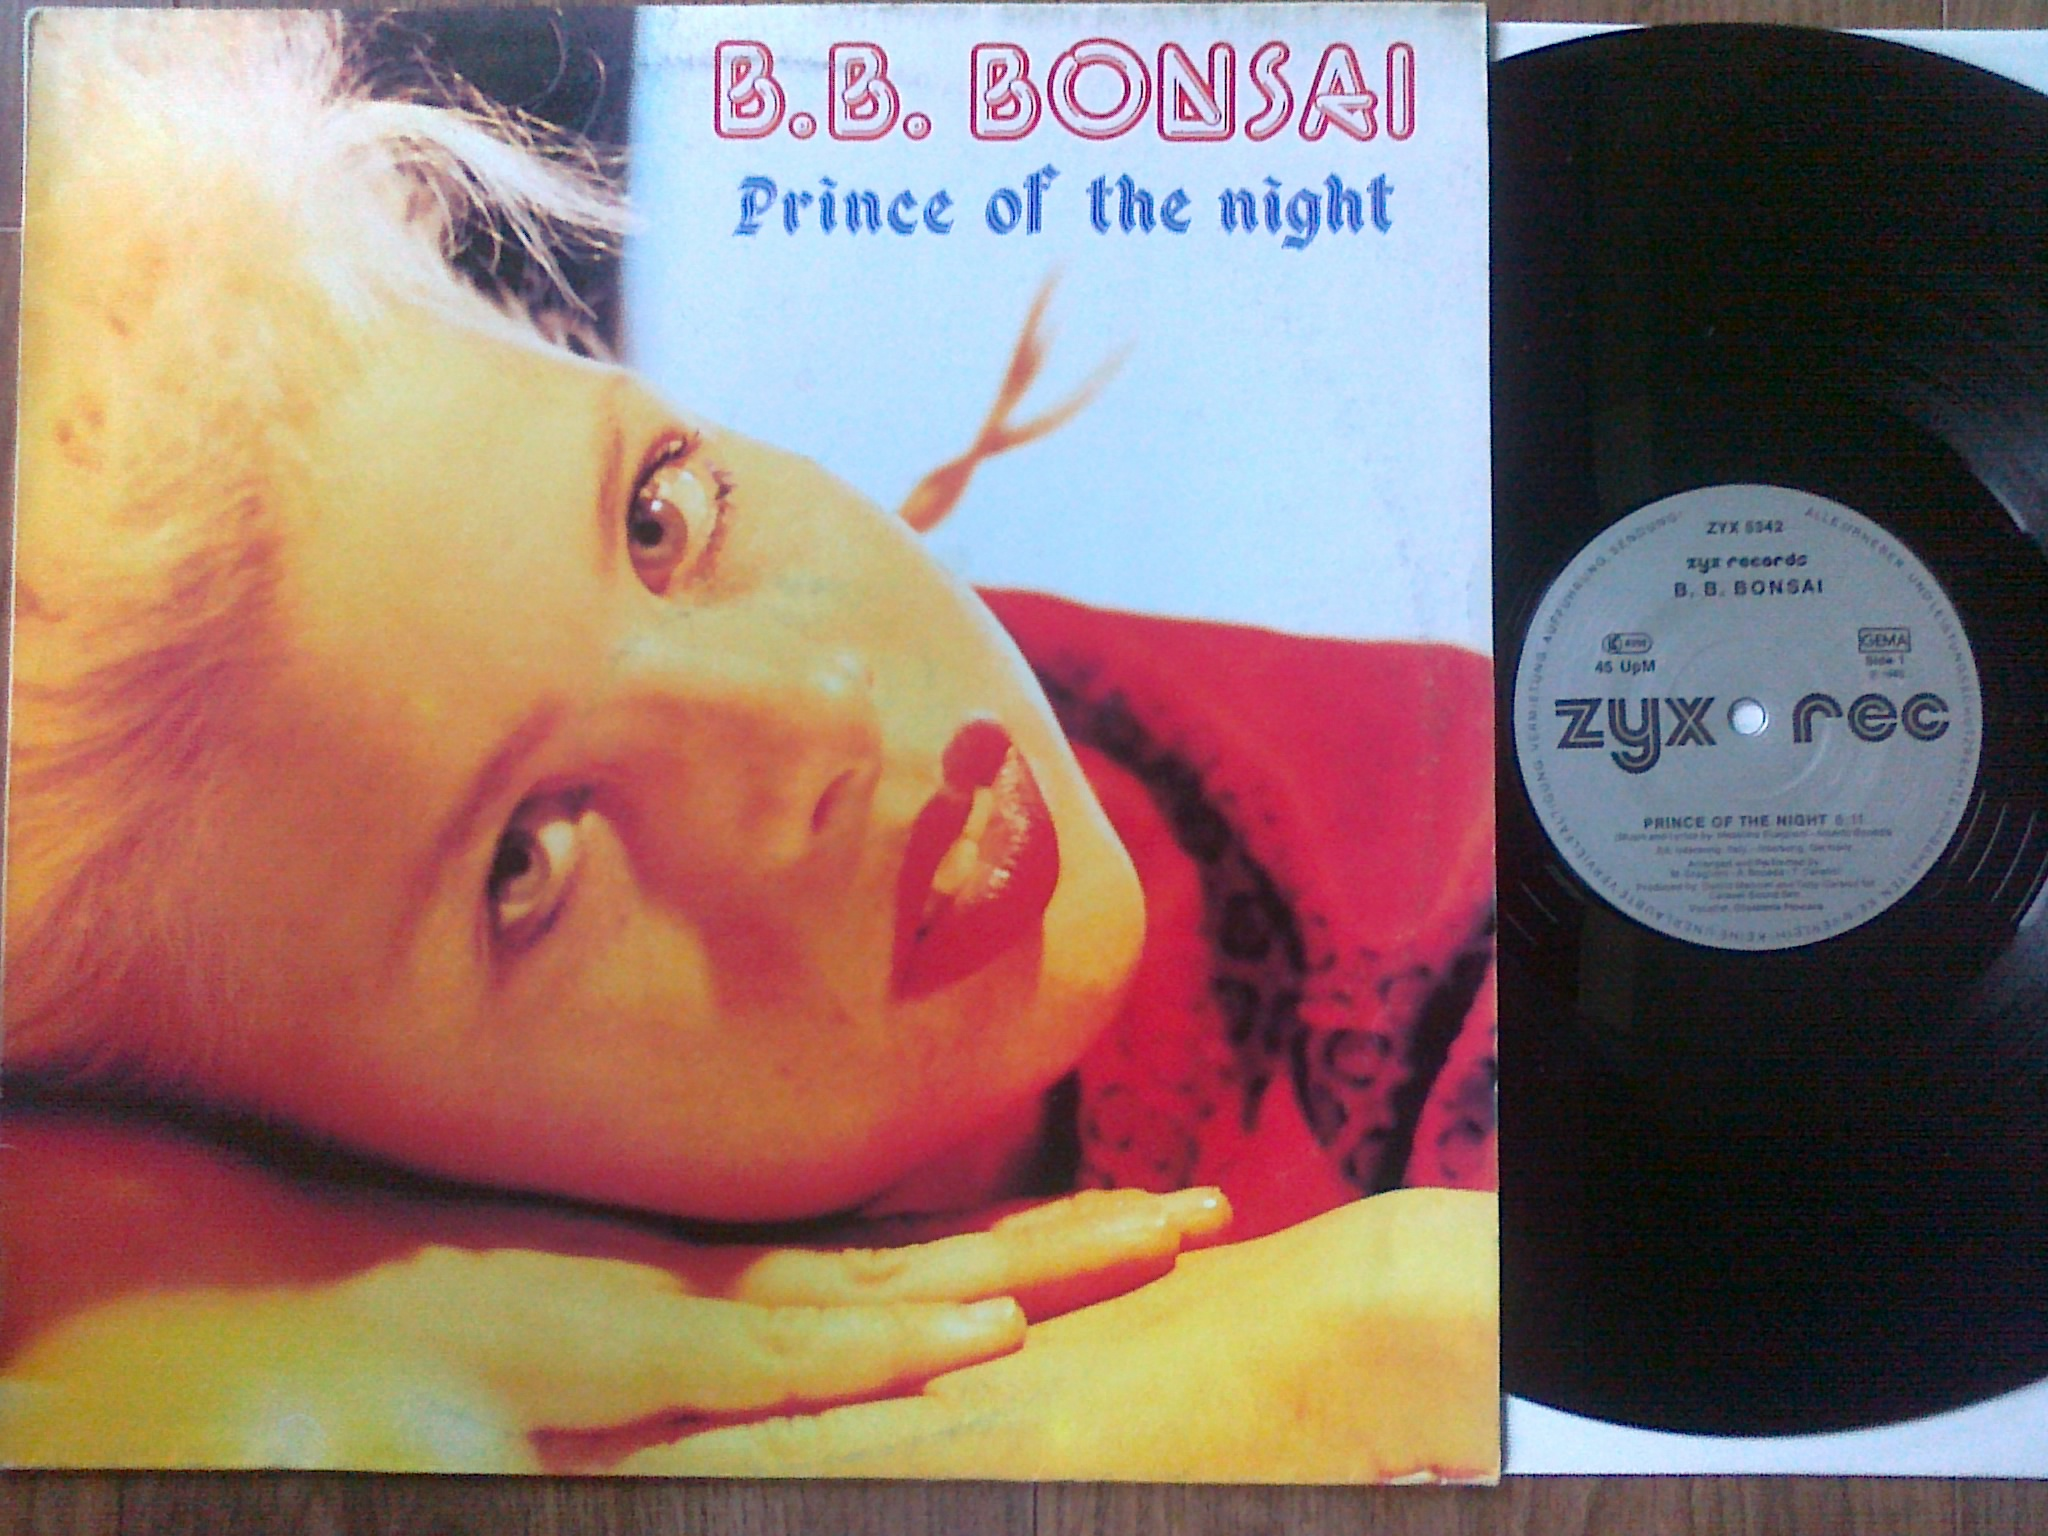 B. B. Bonsai - Prince of the Night